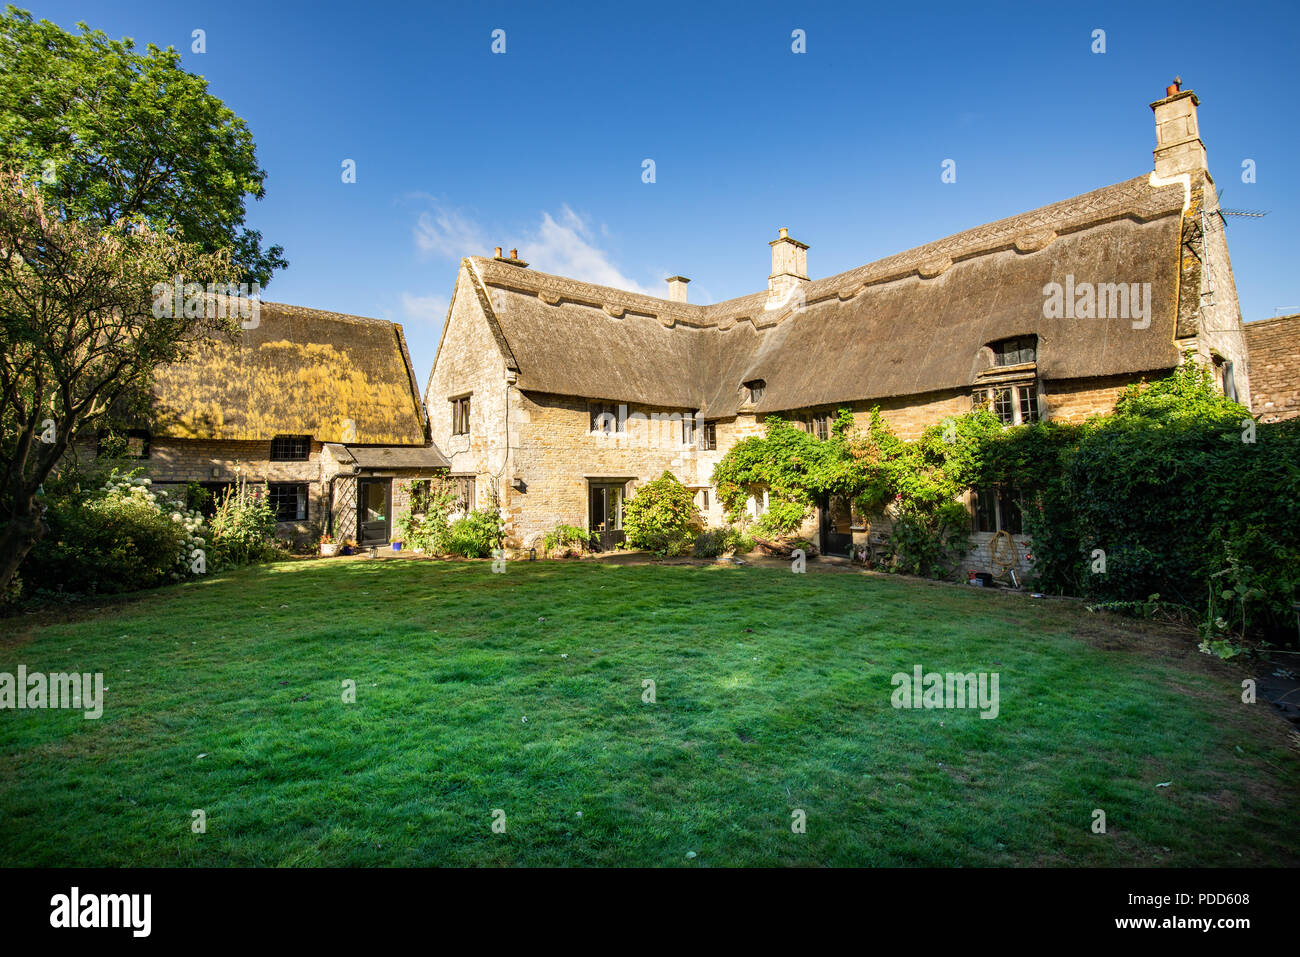 Country cottage in Gretton, Rutland, England during summer - Stock Image